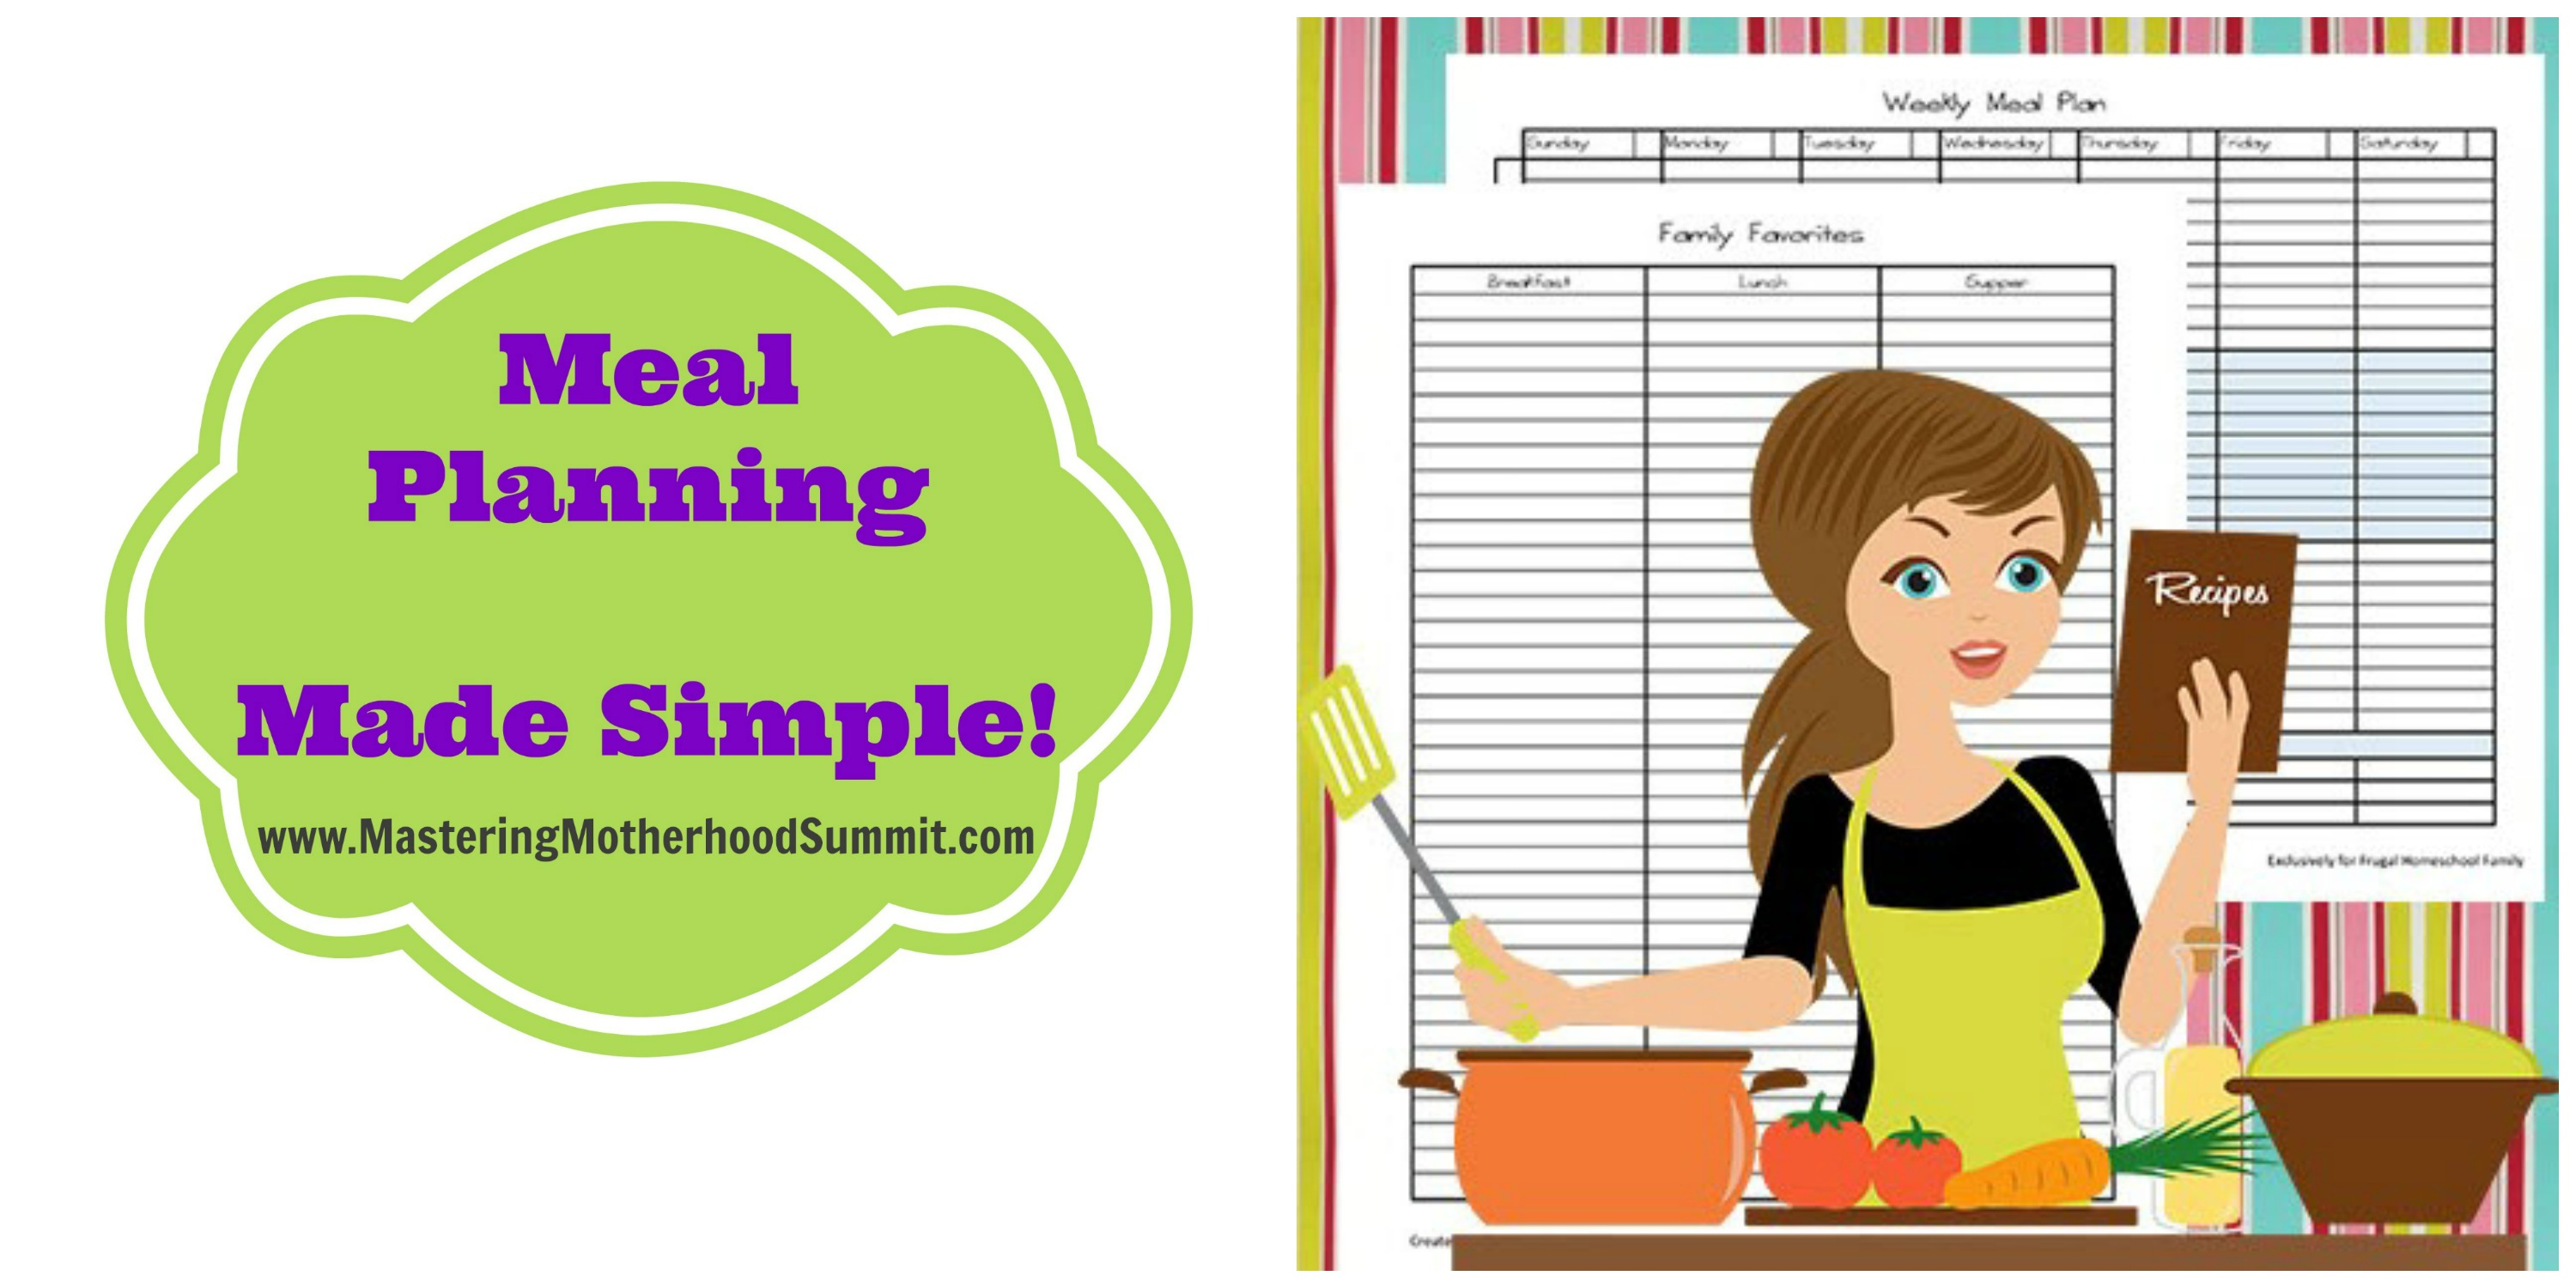 Meal Planning Blog Icon